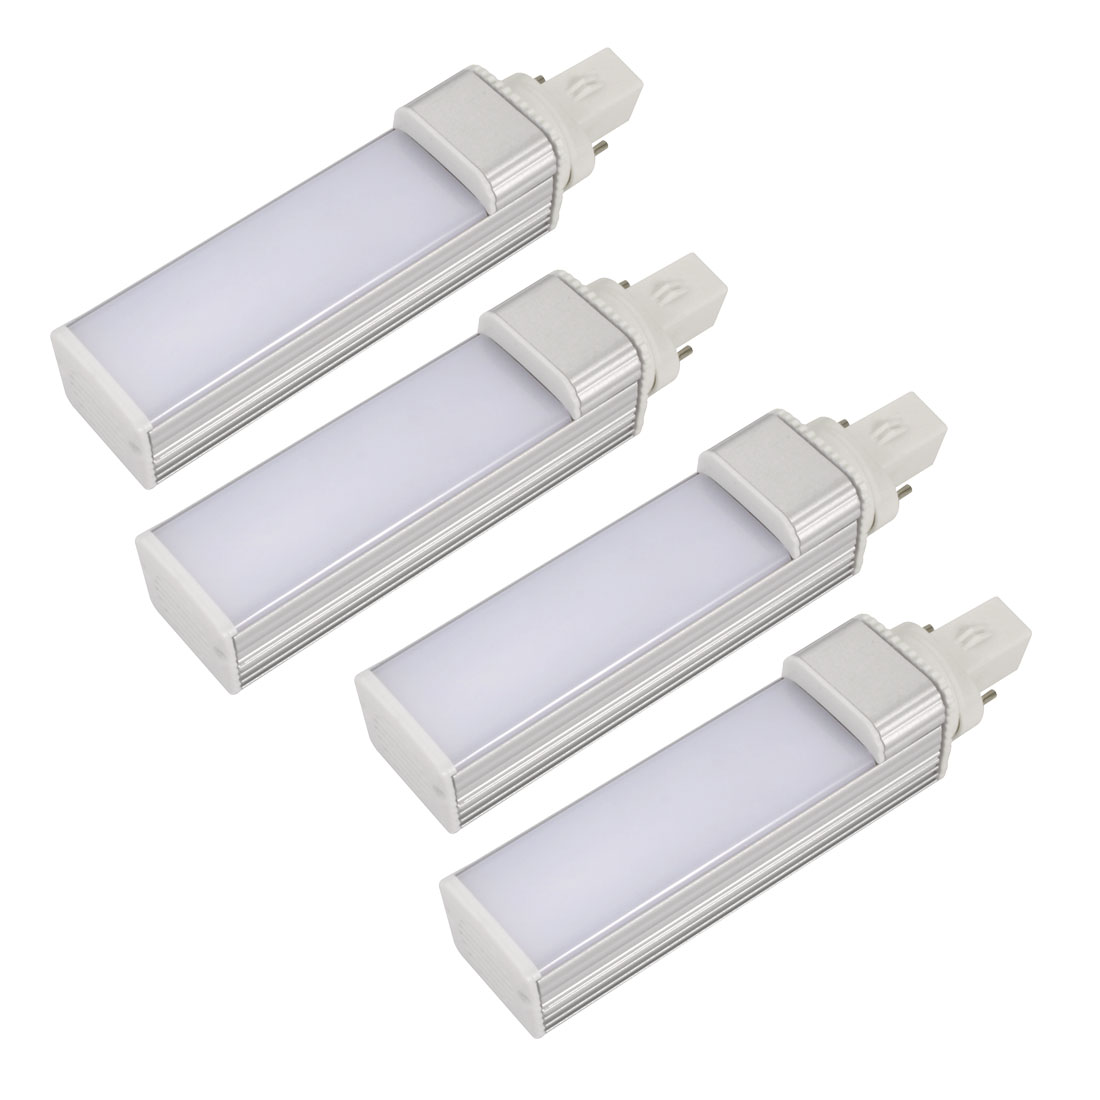 4pack DIY parts for PLC Lamp G23 9W PL-C Lamp Housing Kit w White Cover